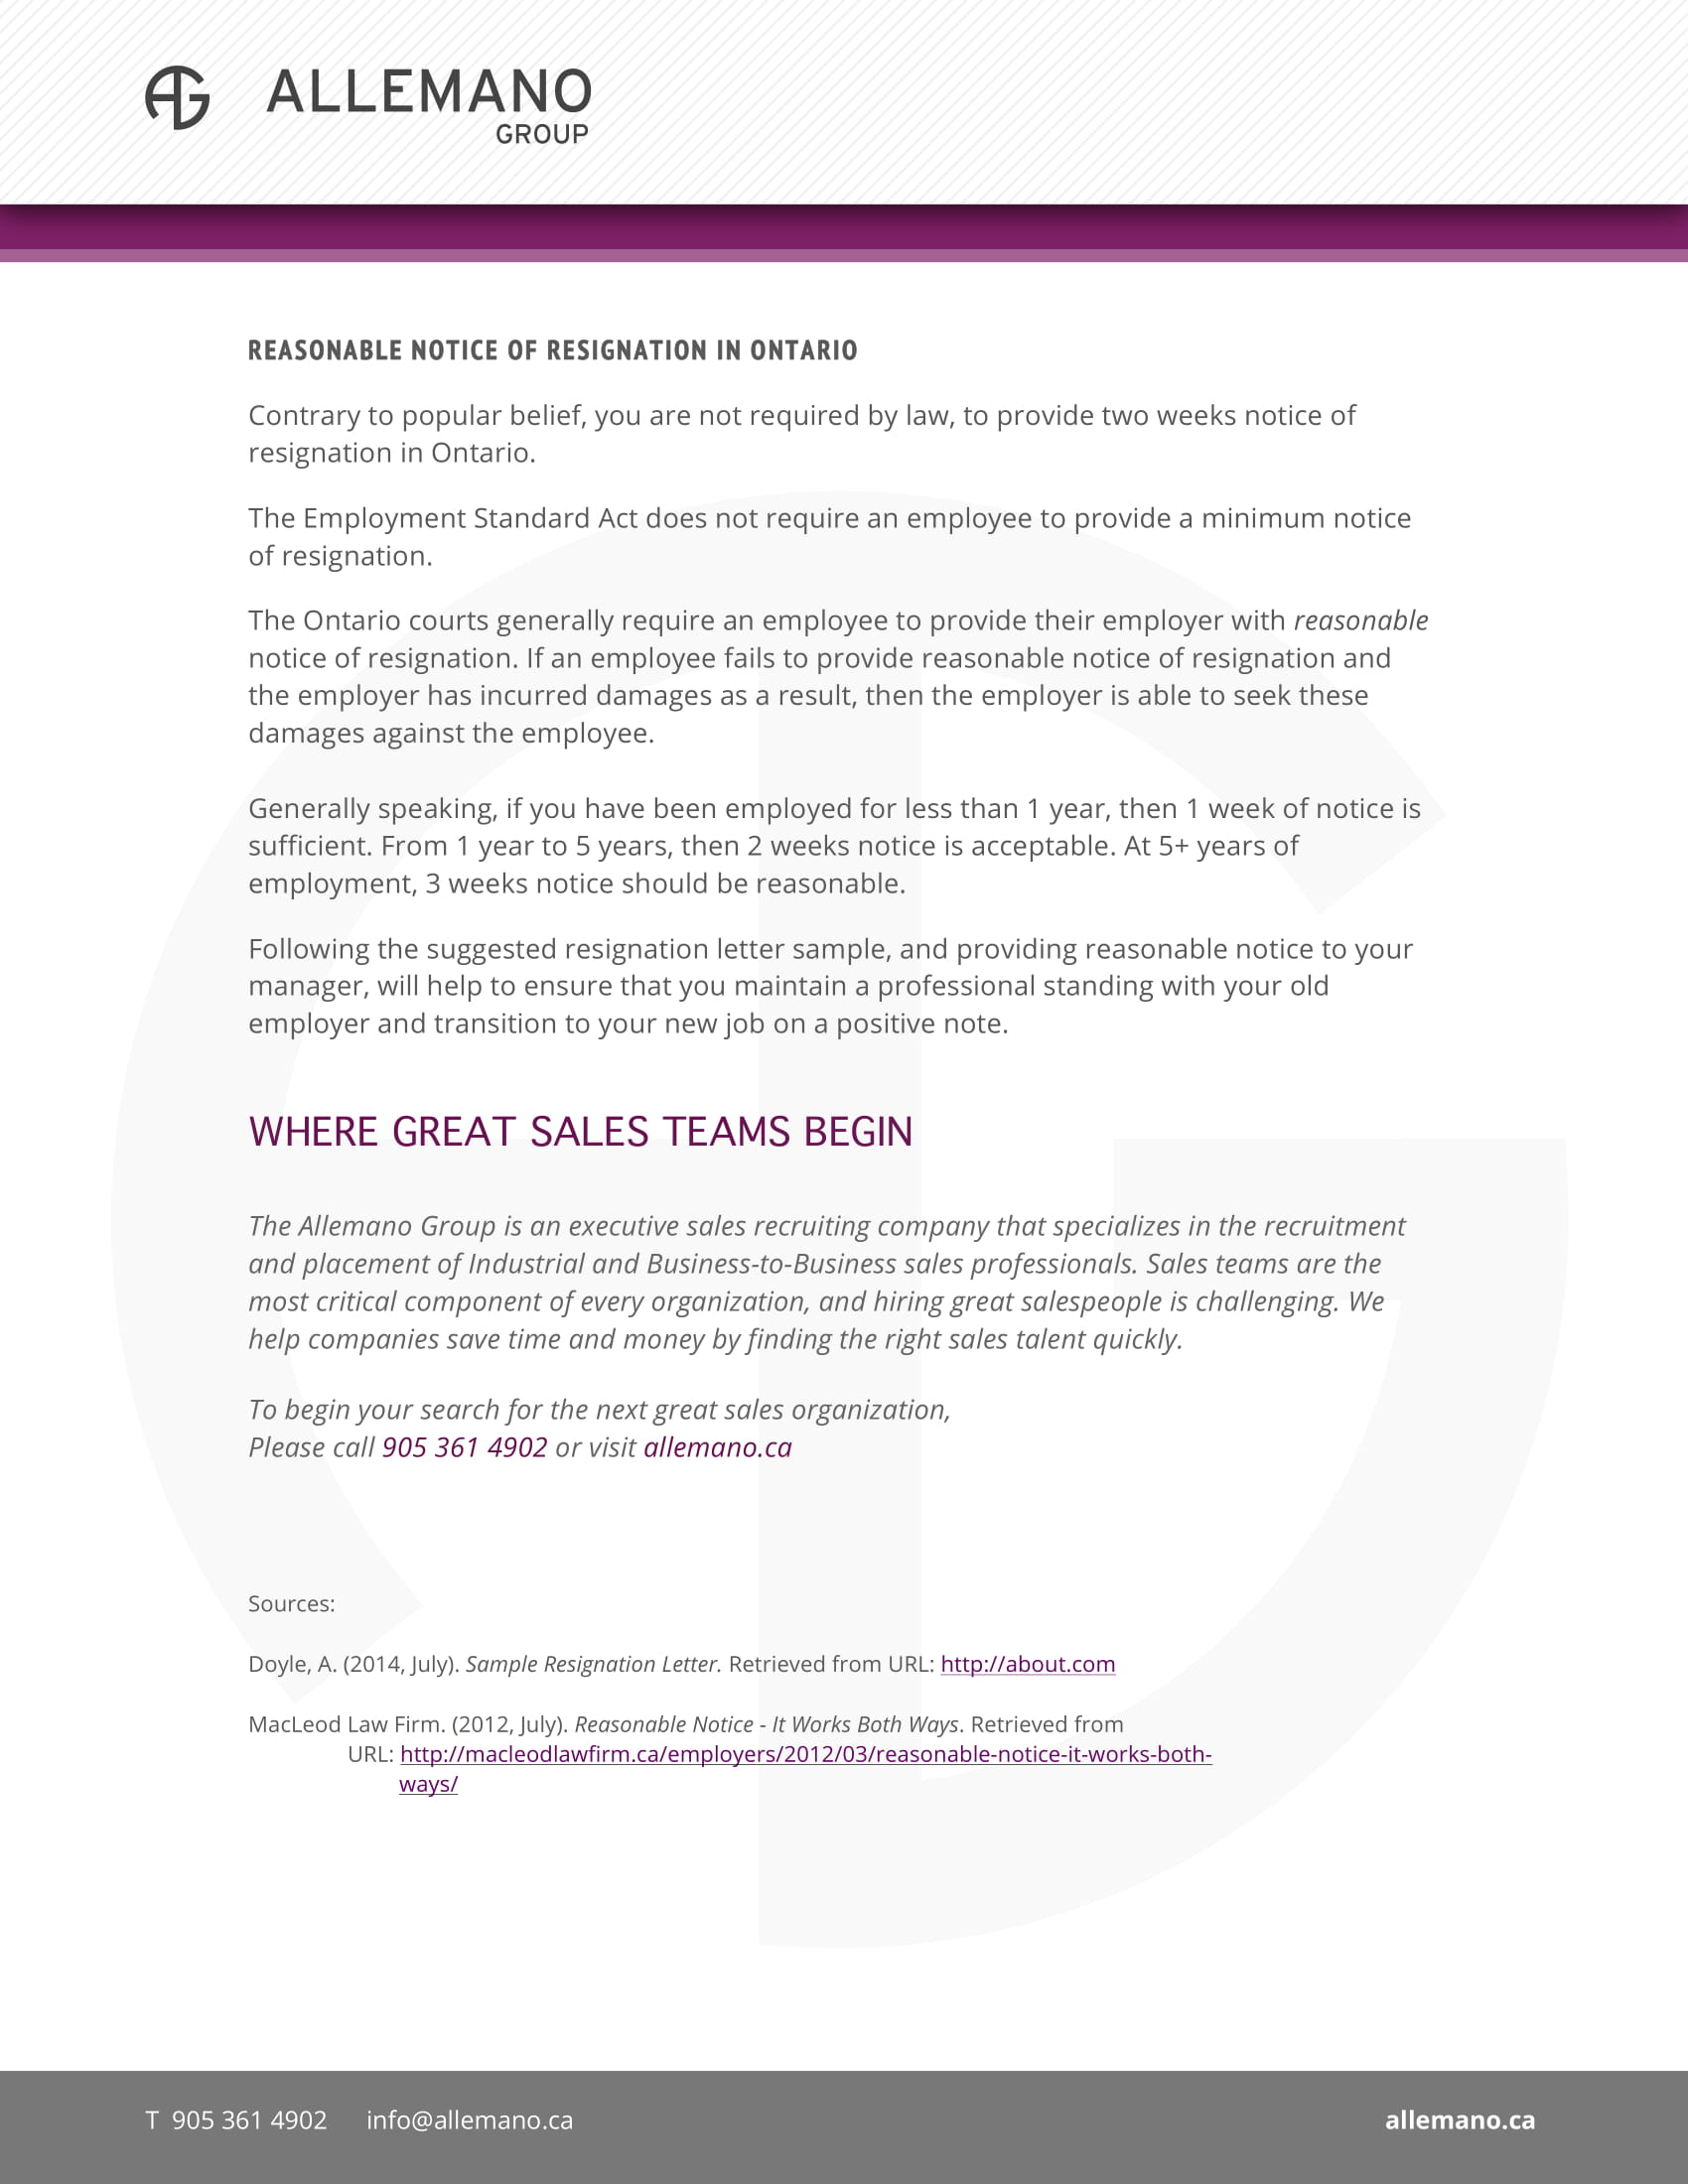 Sample job resignation letter for resigning professionally best 19 simple resignation letter examples pdf word spiritdancerdesigns